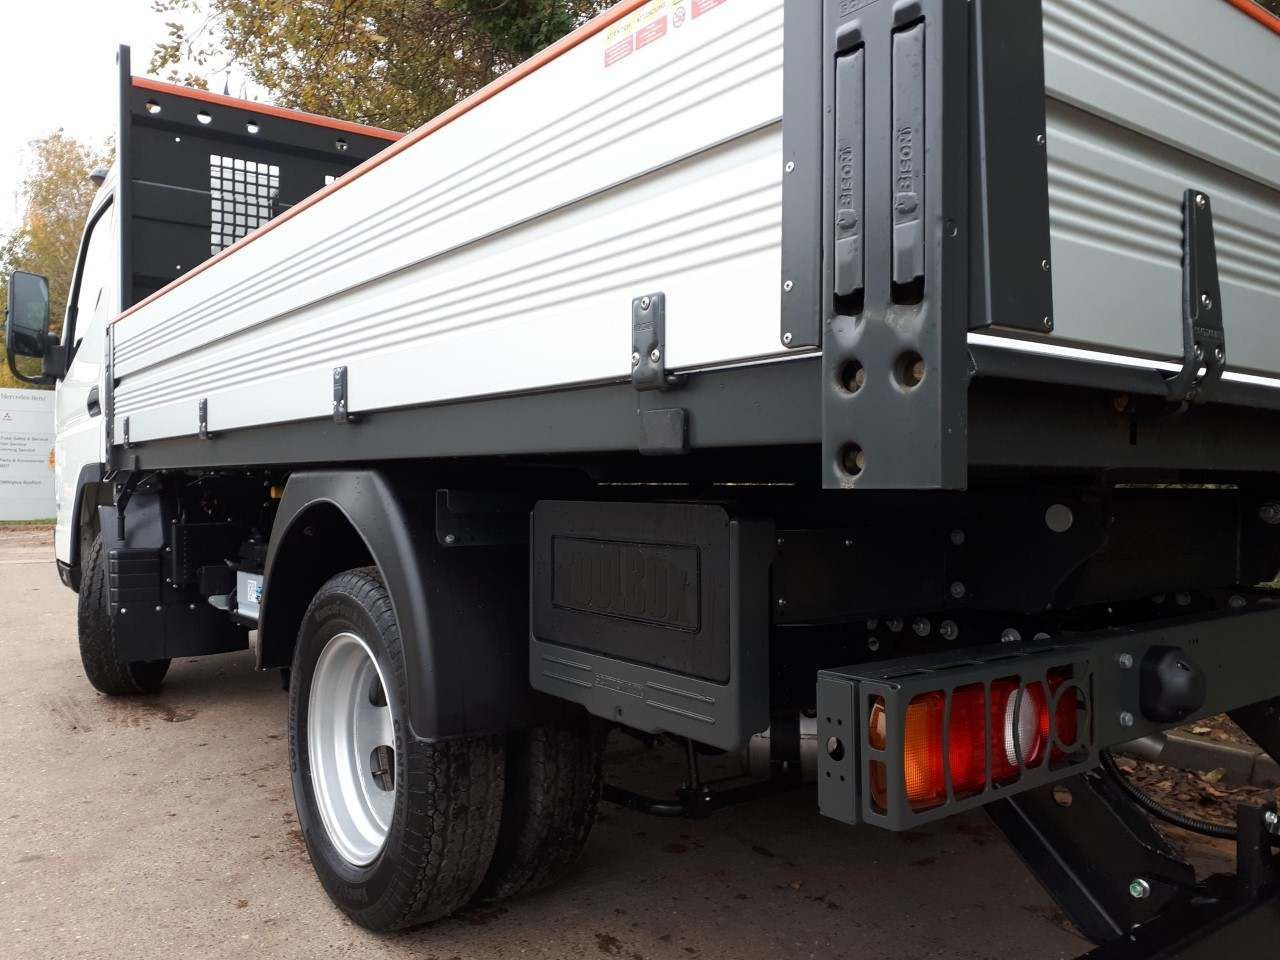 FUSO Canter 3C13 TIPPER - image 3